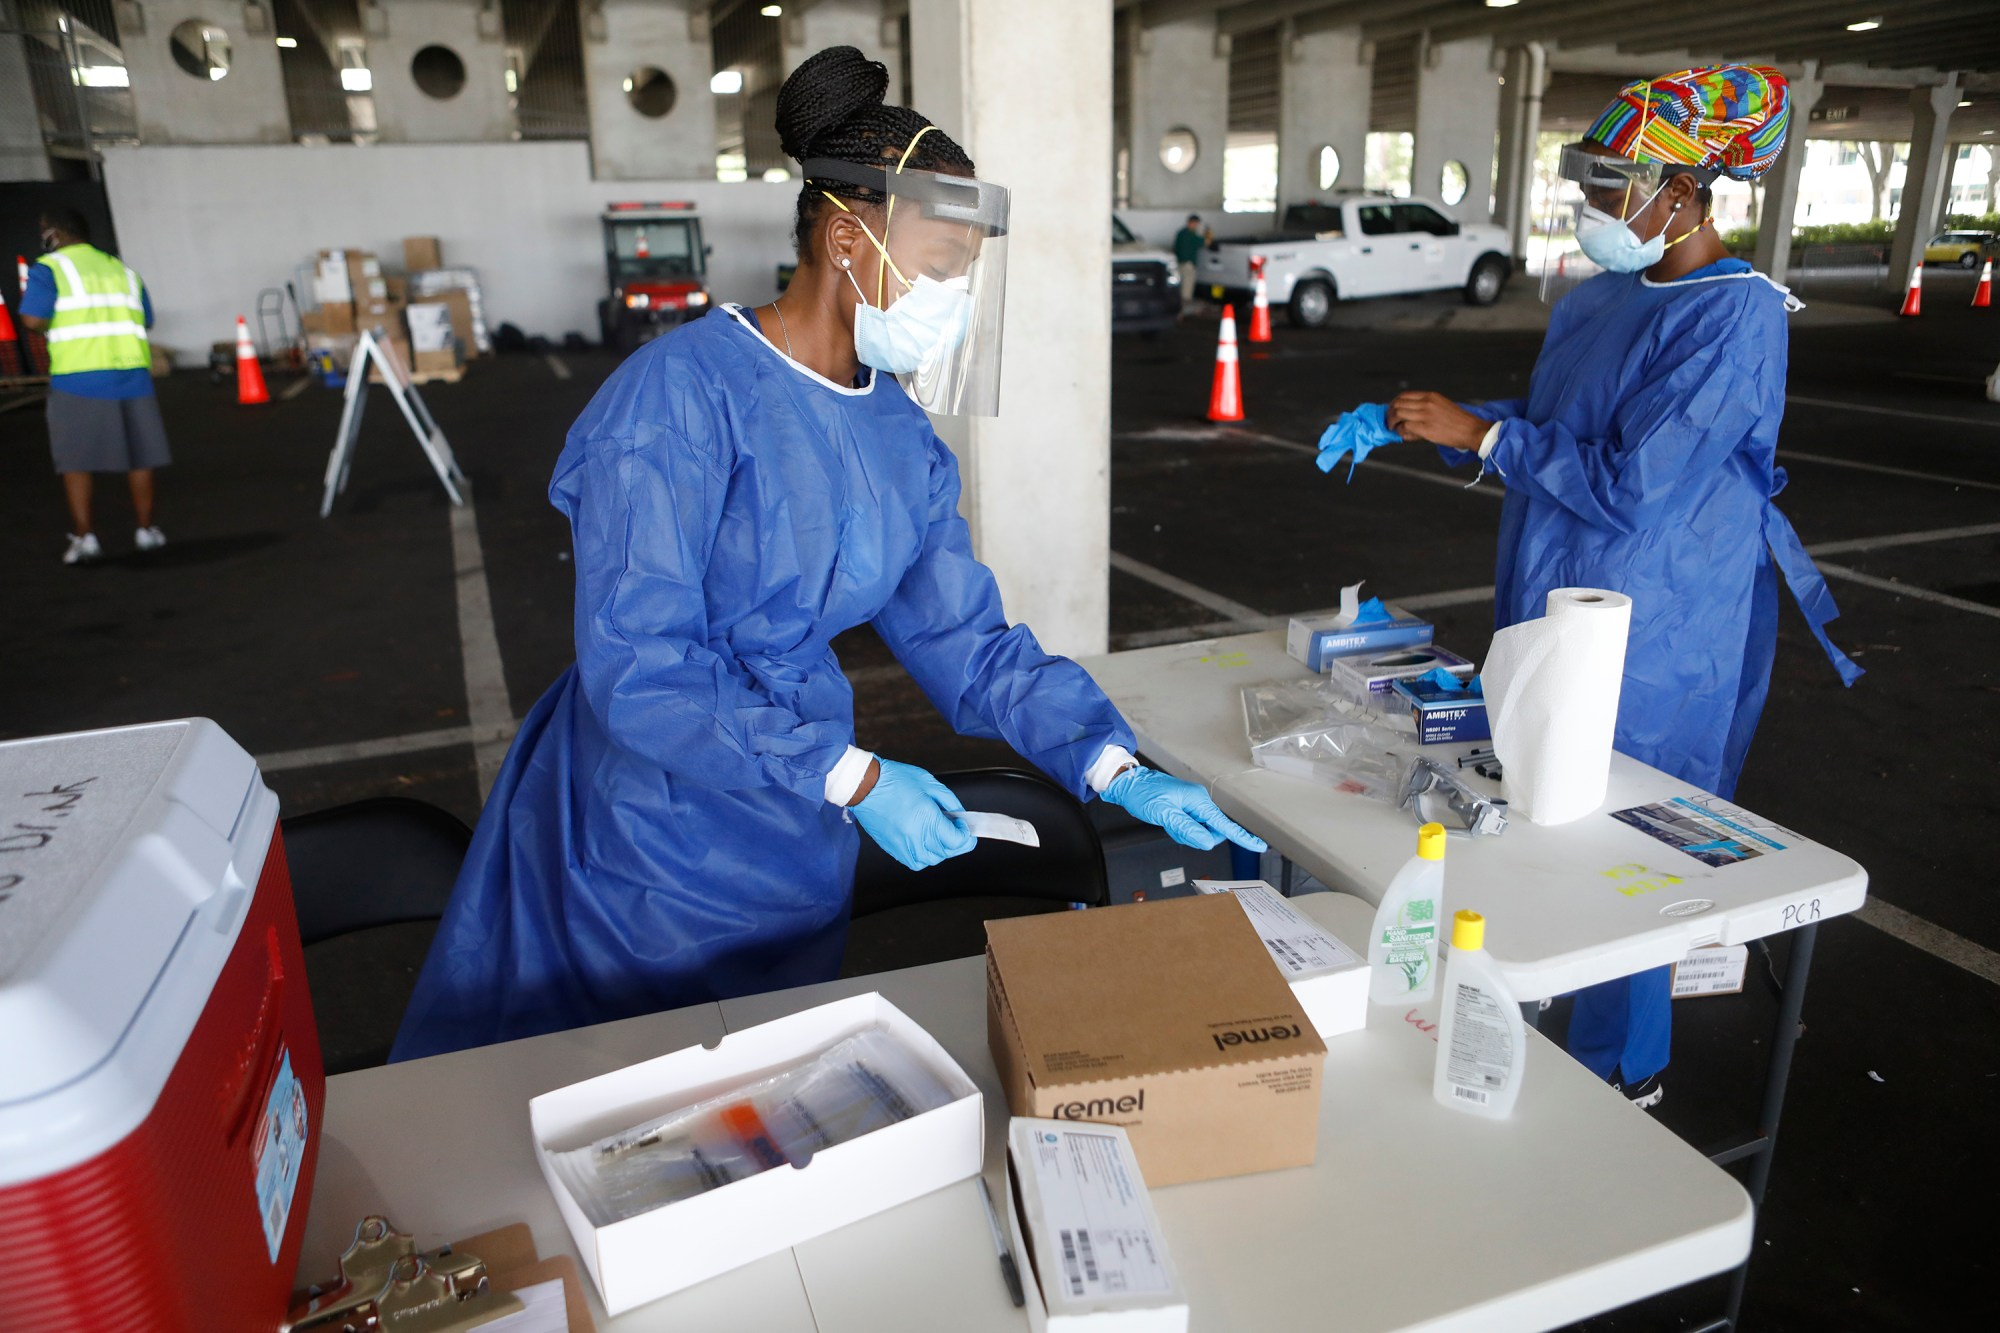 Registered nurses Gina Aubourg and Renee Lewis begin testing at the COVID-19 drive-thru site at the Duke Energy for the Arts Mahaffey Theater on July 8, 2020 in St. Petersburg, Florida. (Octavio Jones/Getty Images)